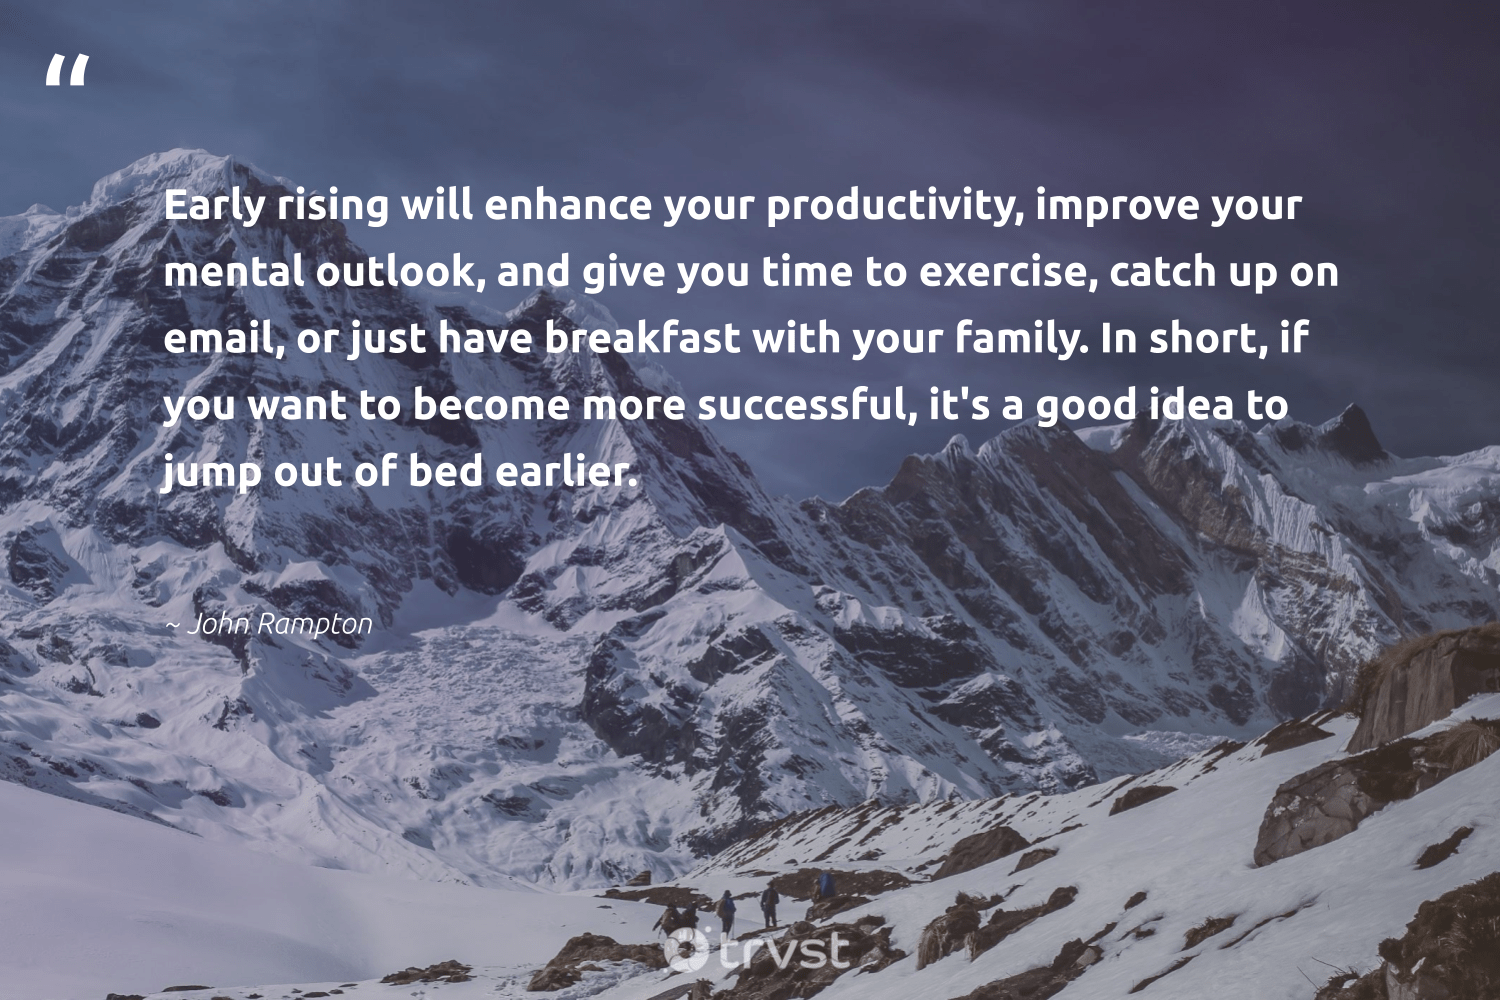 """""""Early rising will enhance your productivity, improve your mental outlook, and give you time to exercise, catch up on email, or just have breakfast with your family. In short, if you want to become more successful, it's a good idea to jump out of bed earlier.""""  - John Rampton #trvst #quotes #family #exercise #productivity #cardio #success #health #dotherightthing #bodypositive #efficiencies #changemakers"""